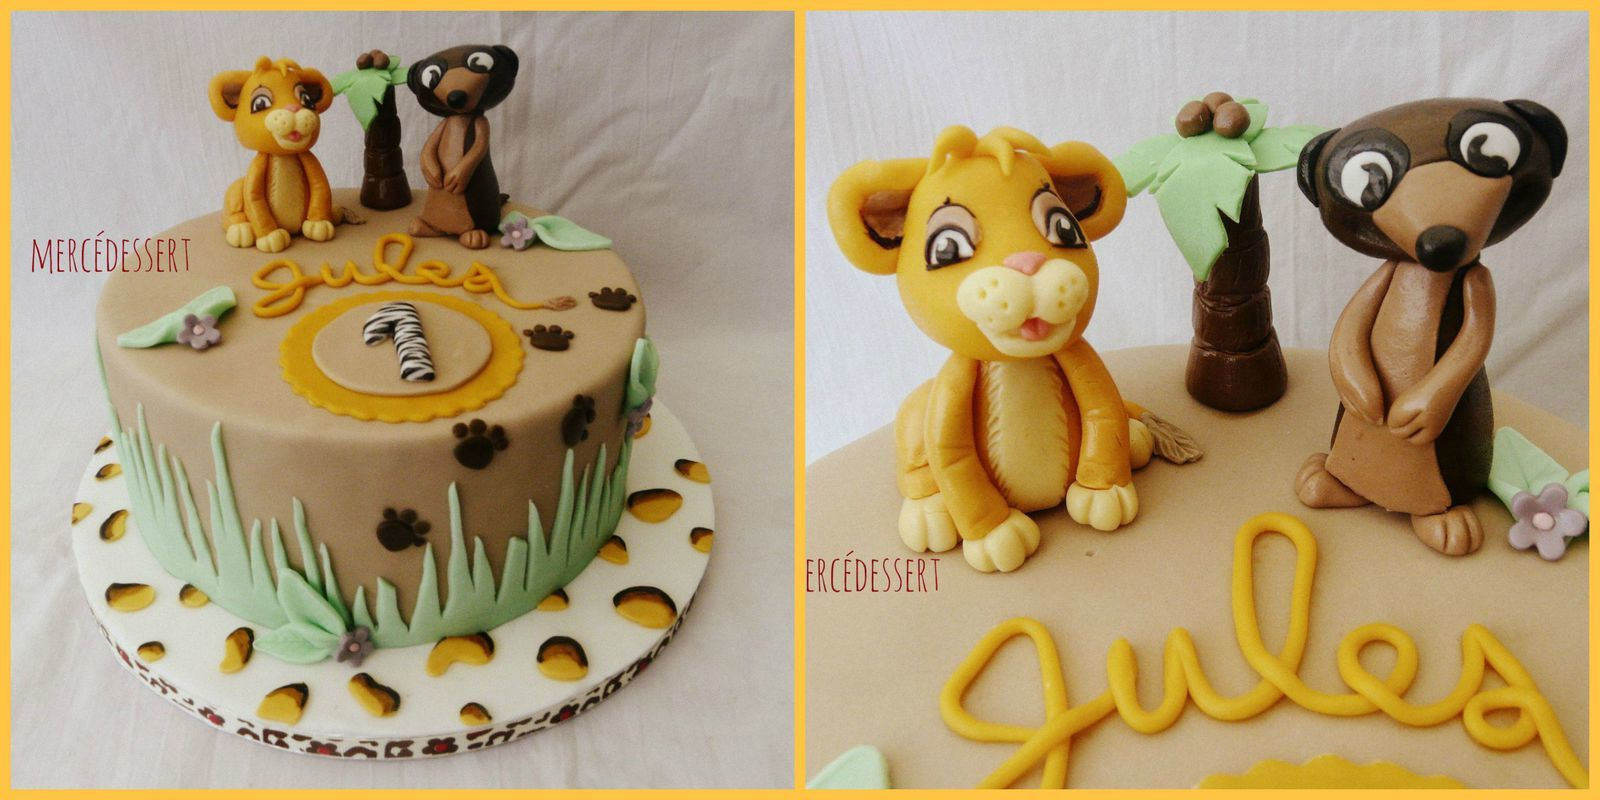 Cake Design Lyon : Wedding cake - mes creations - Mercedessert